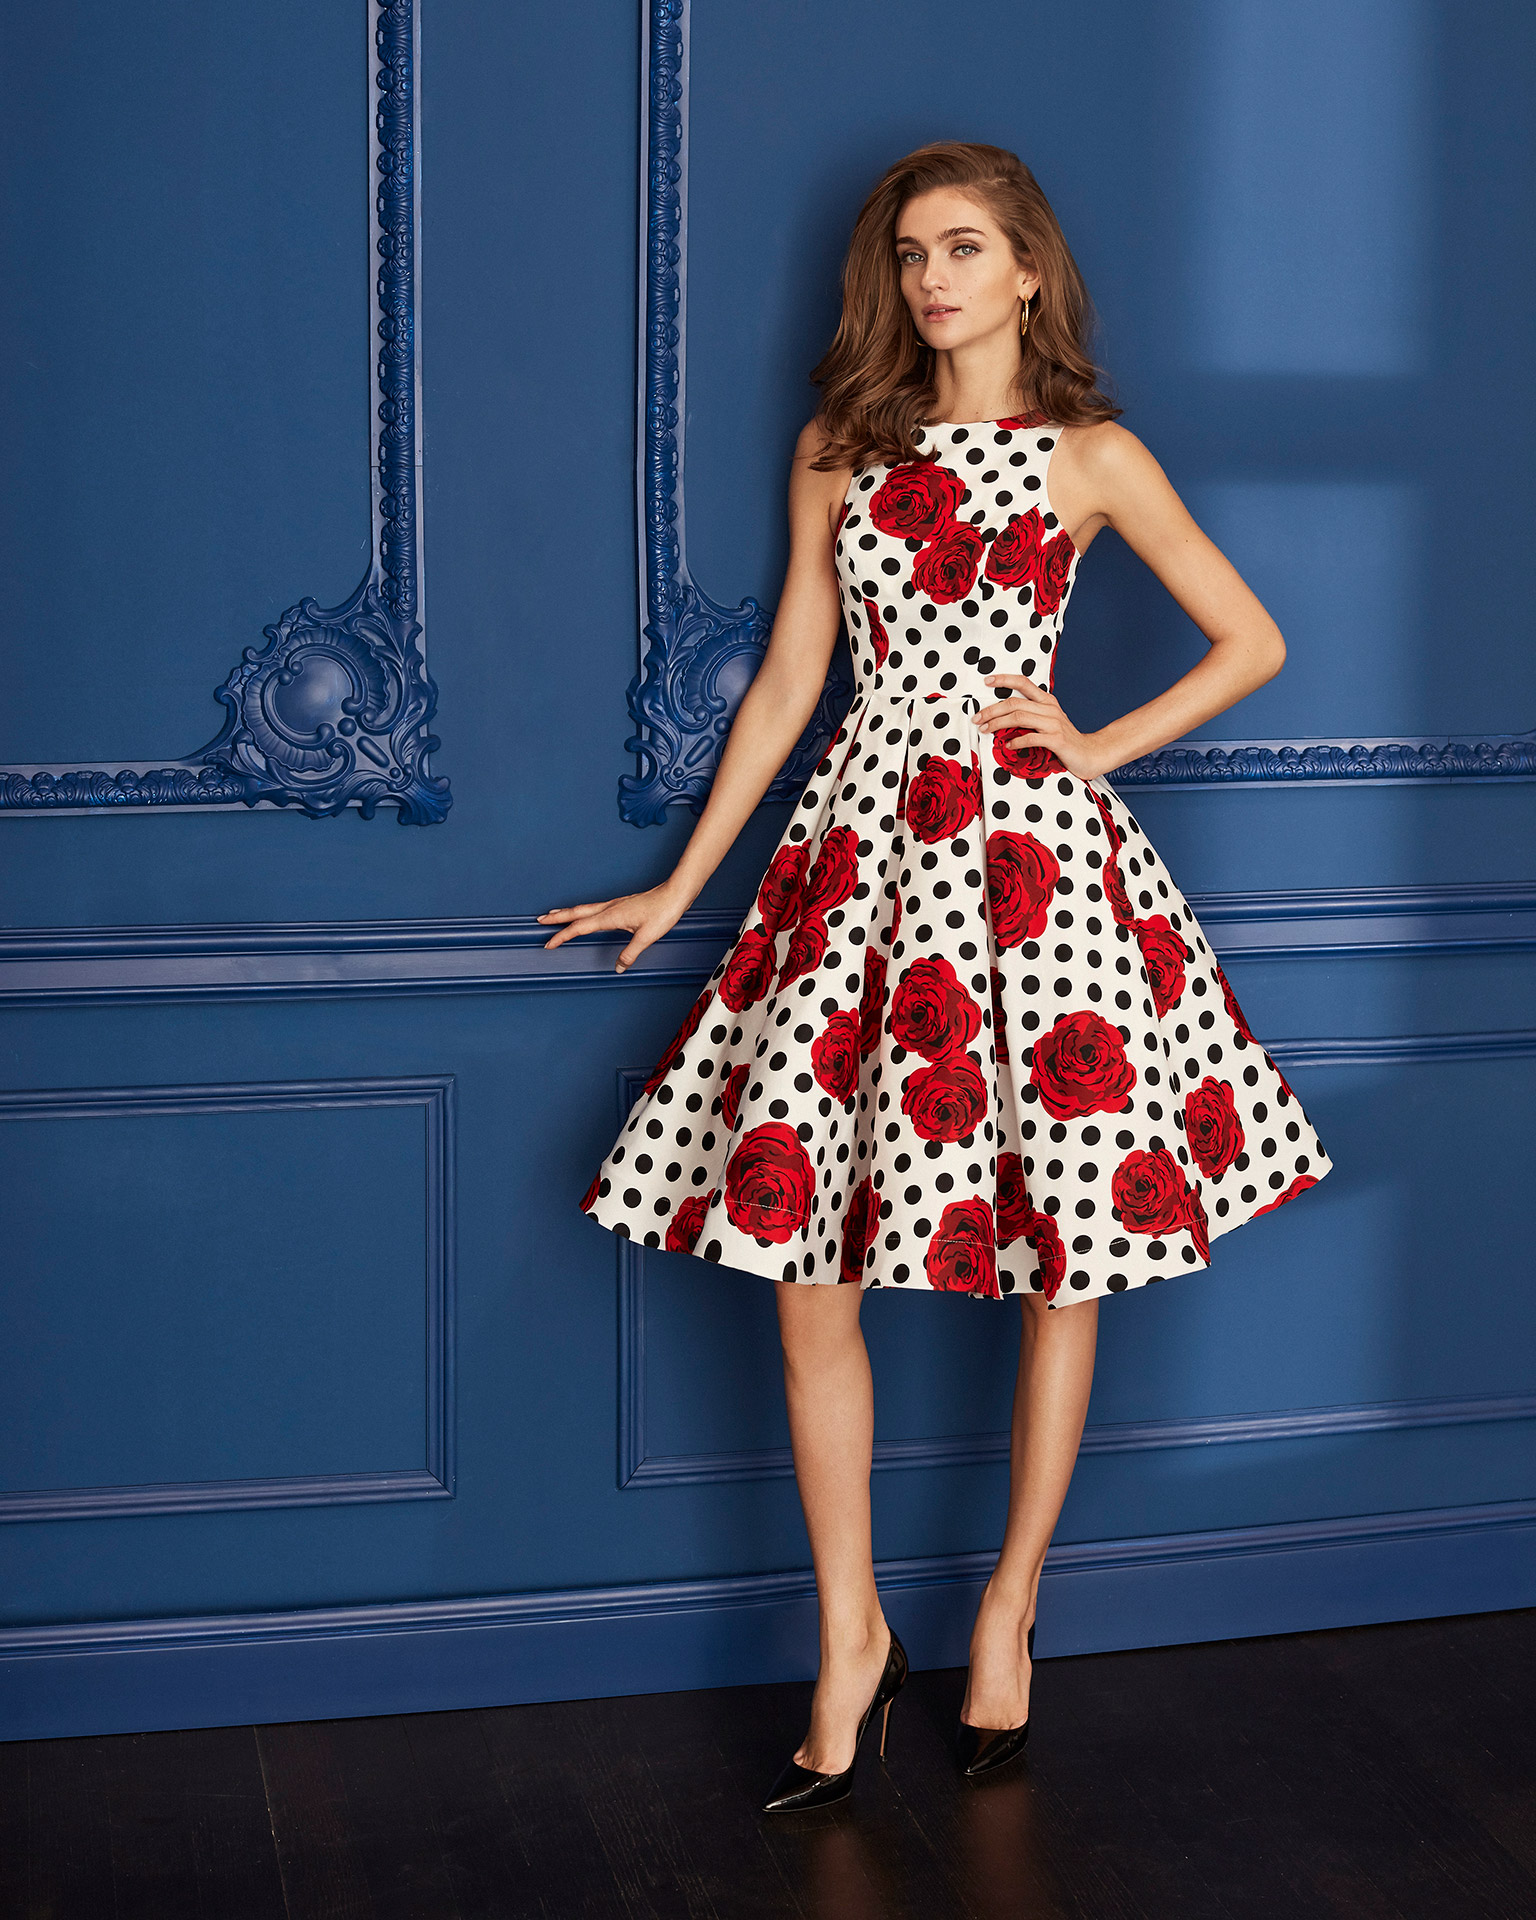 Print cocktail dress. Bateau neckline with box pleat skirt. 2020 MARFIL BARCELONA Collection.